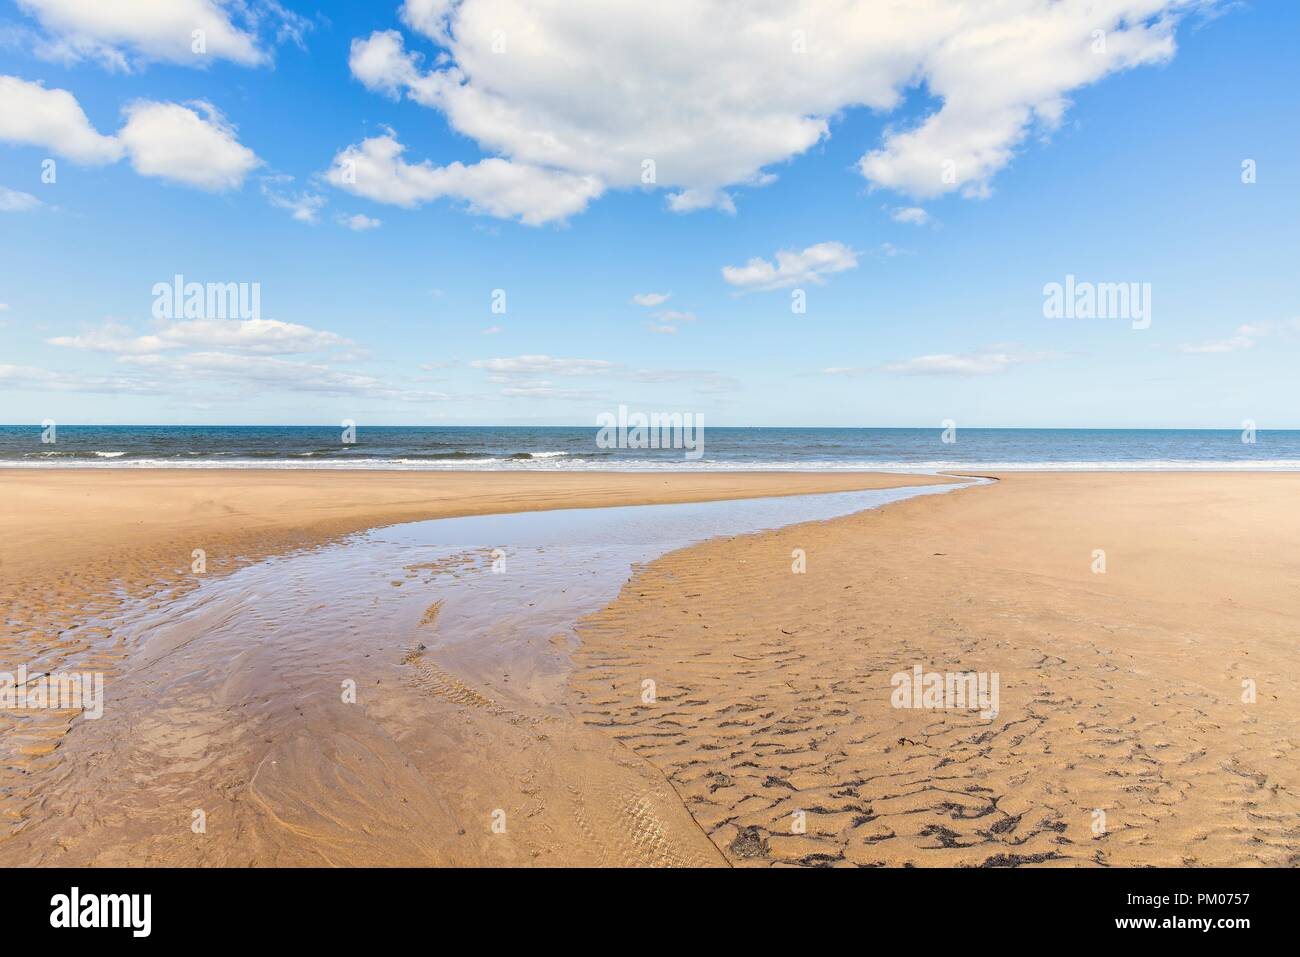 A wide stretch of water narrows as it runs to the sea across the beach.  A blue sky with clouds is above. Stock Photo